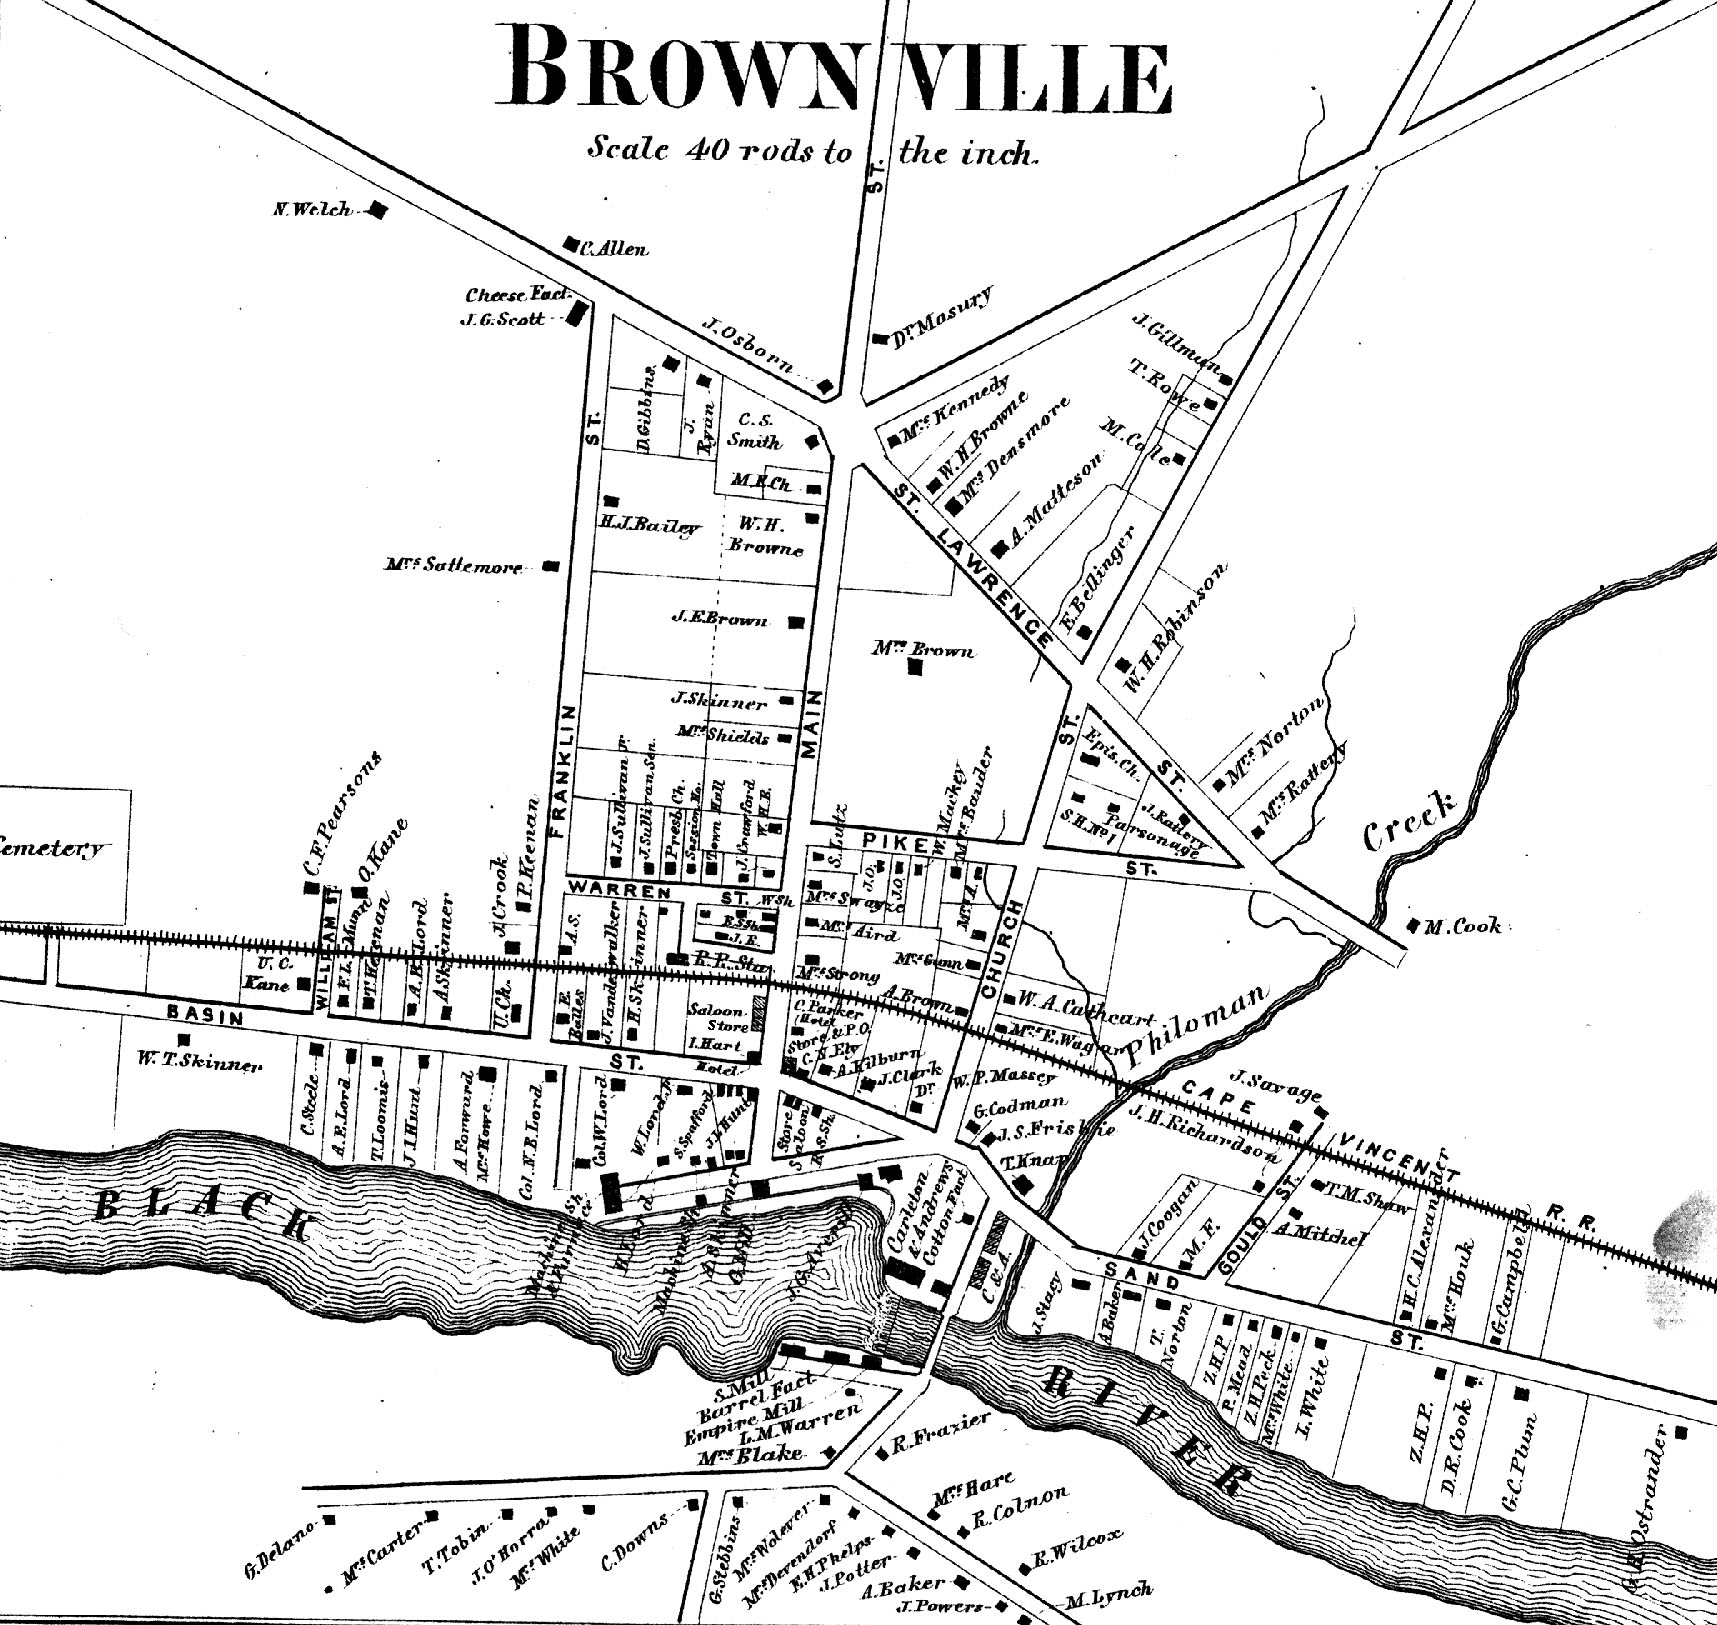 1864 Map of Brownville